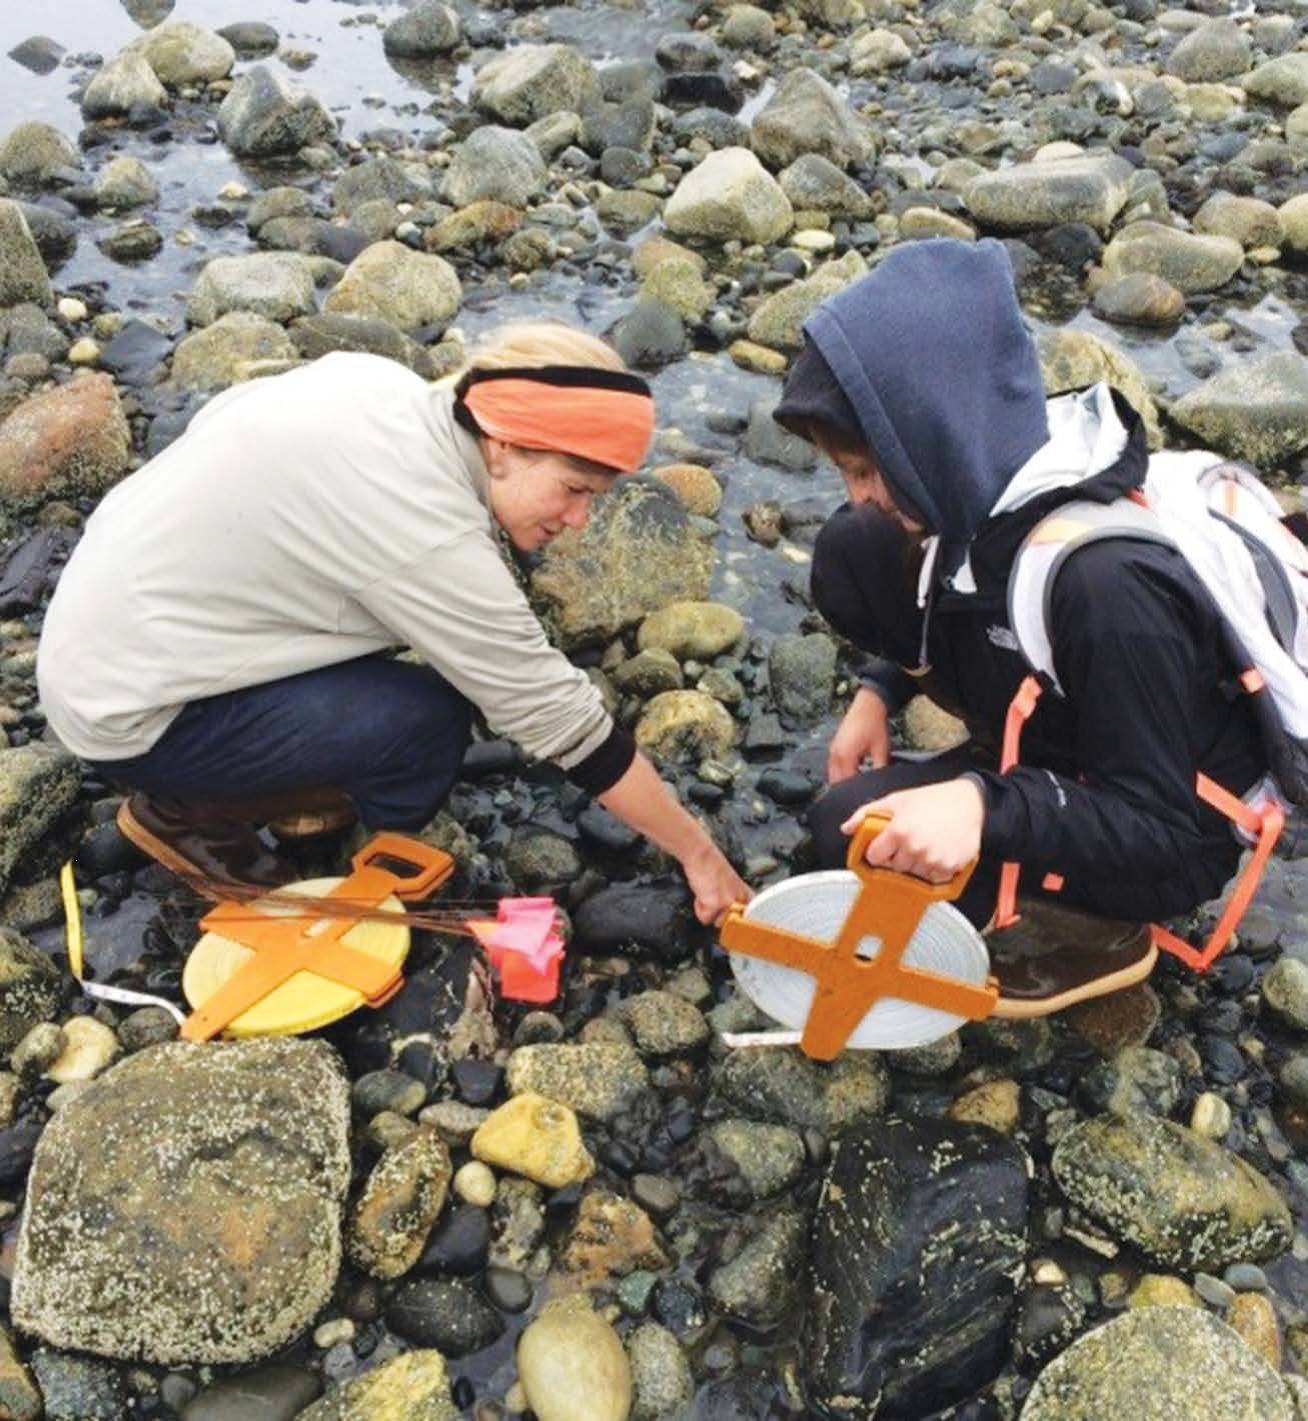 Two women scientists kneeling down near the water taking measurements and placling small marker flags.